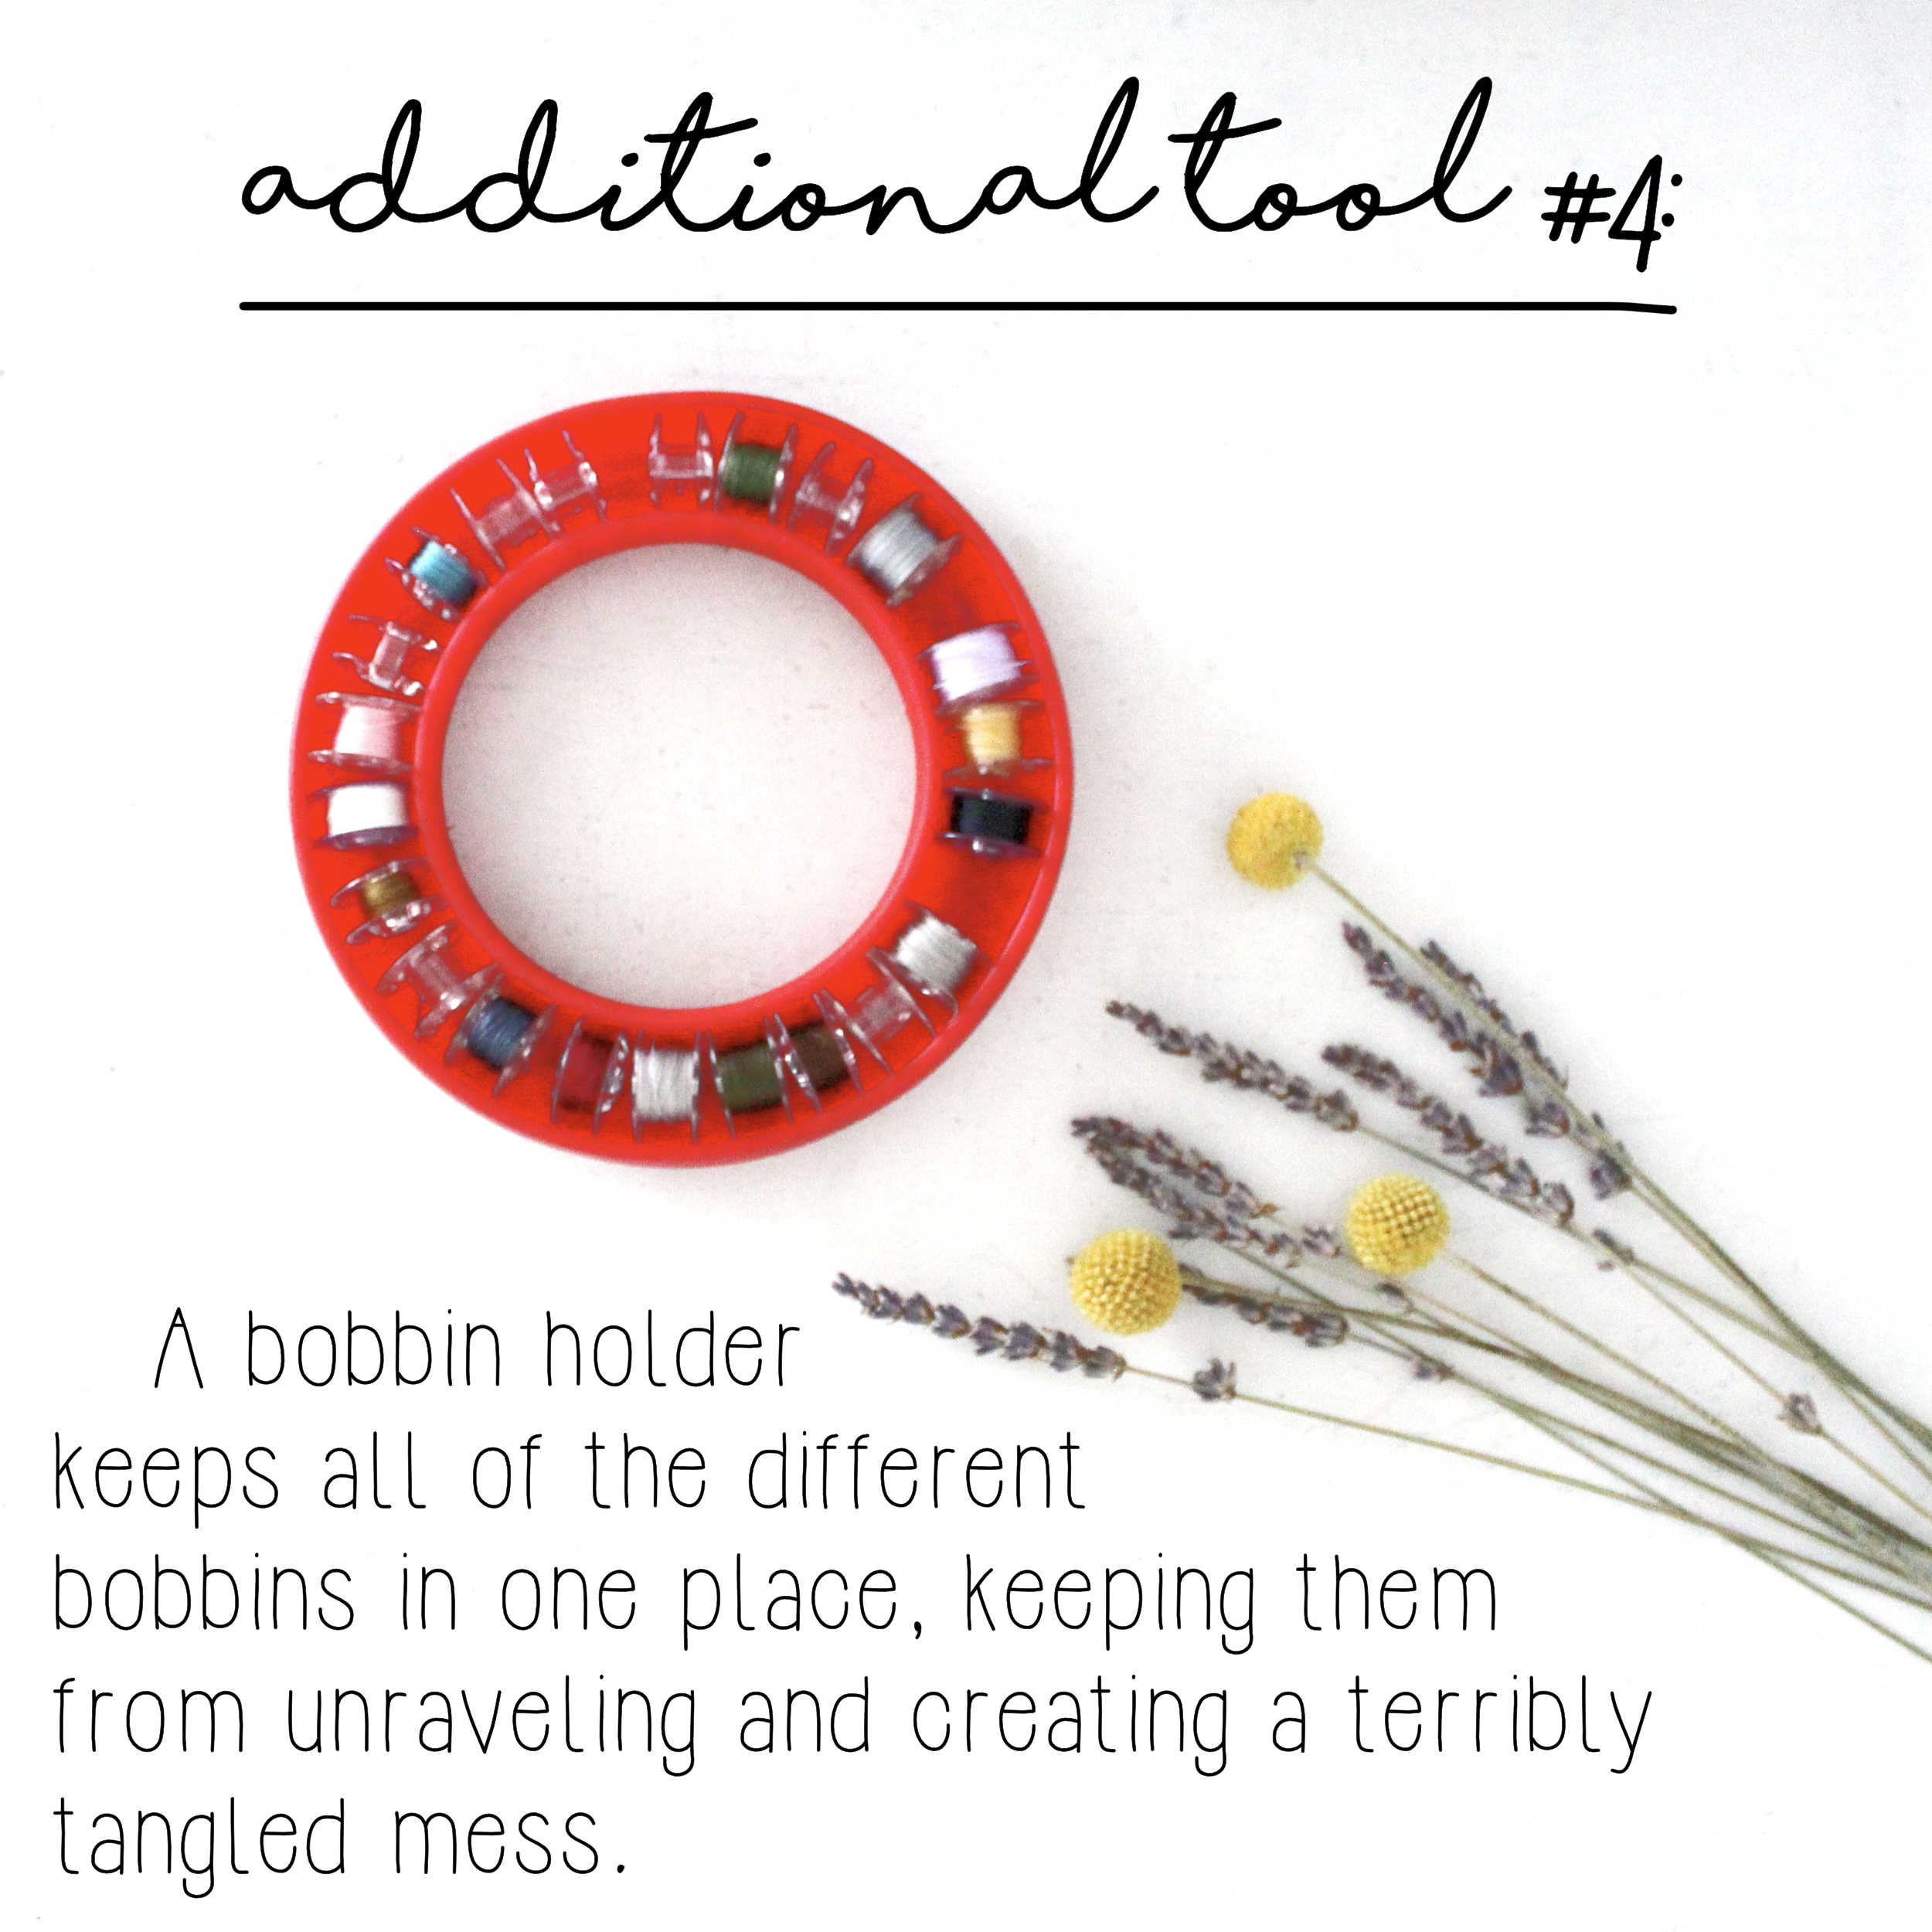 How To Build A Sewing Kit: Additional Tool #4, Bobbin Holder